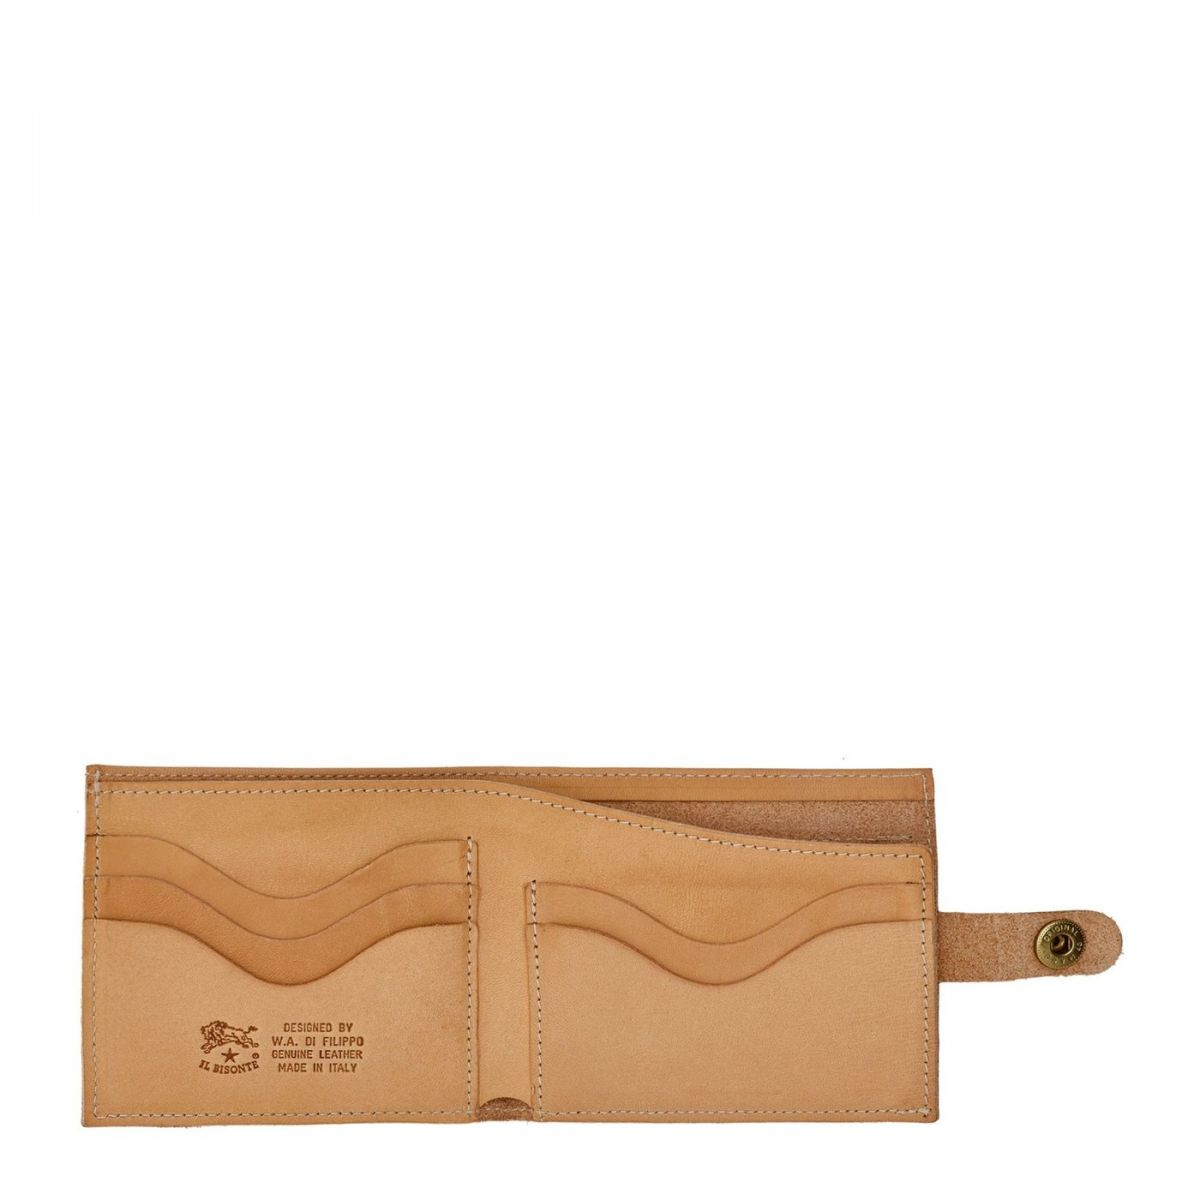 Men's Bi-Fold Wallet  in Cowhide Double Leather SBW034 color Natural | Details